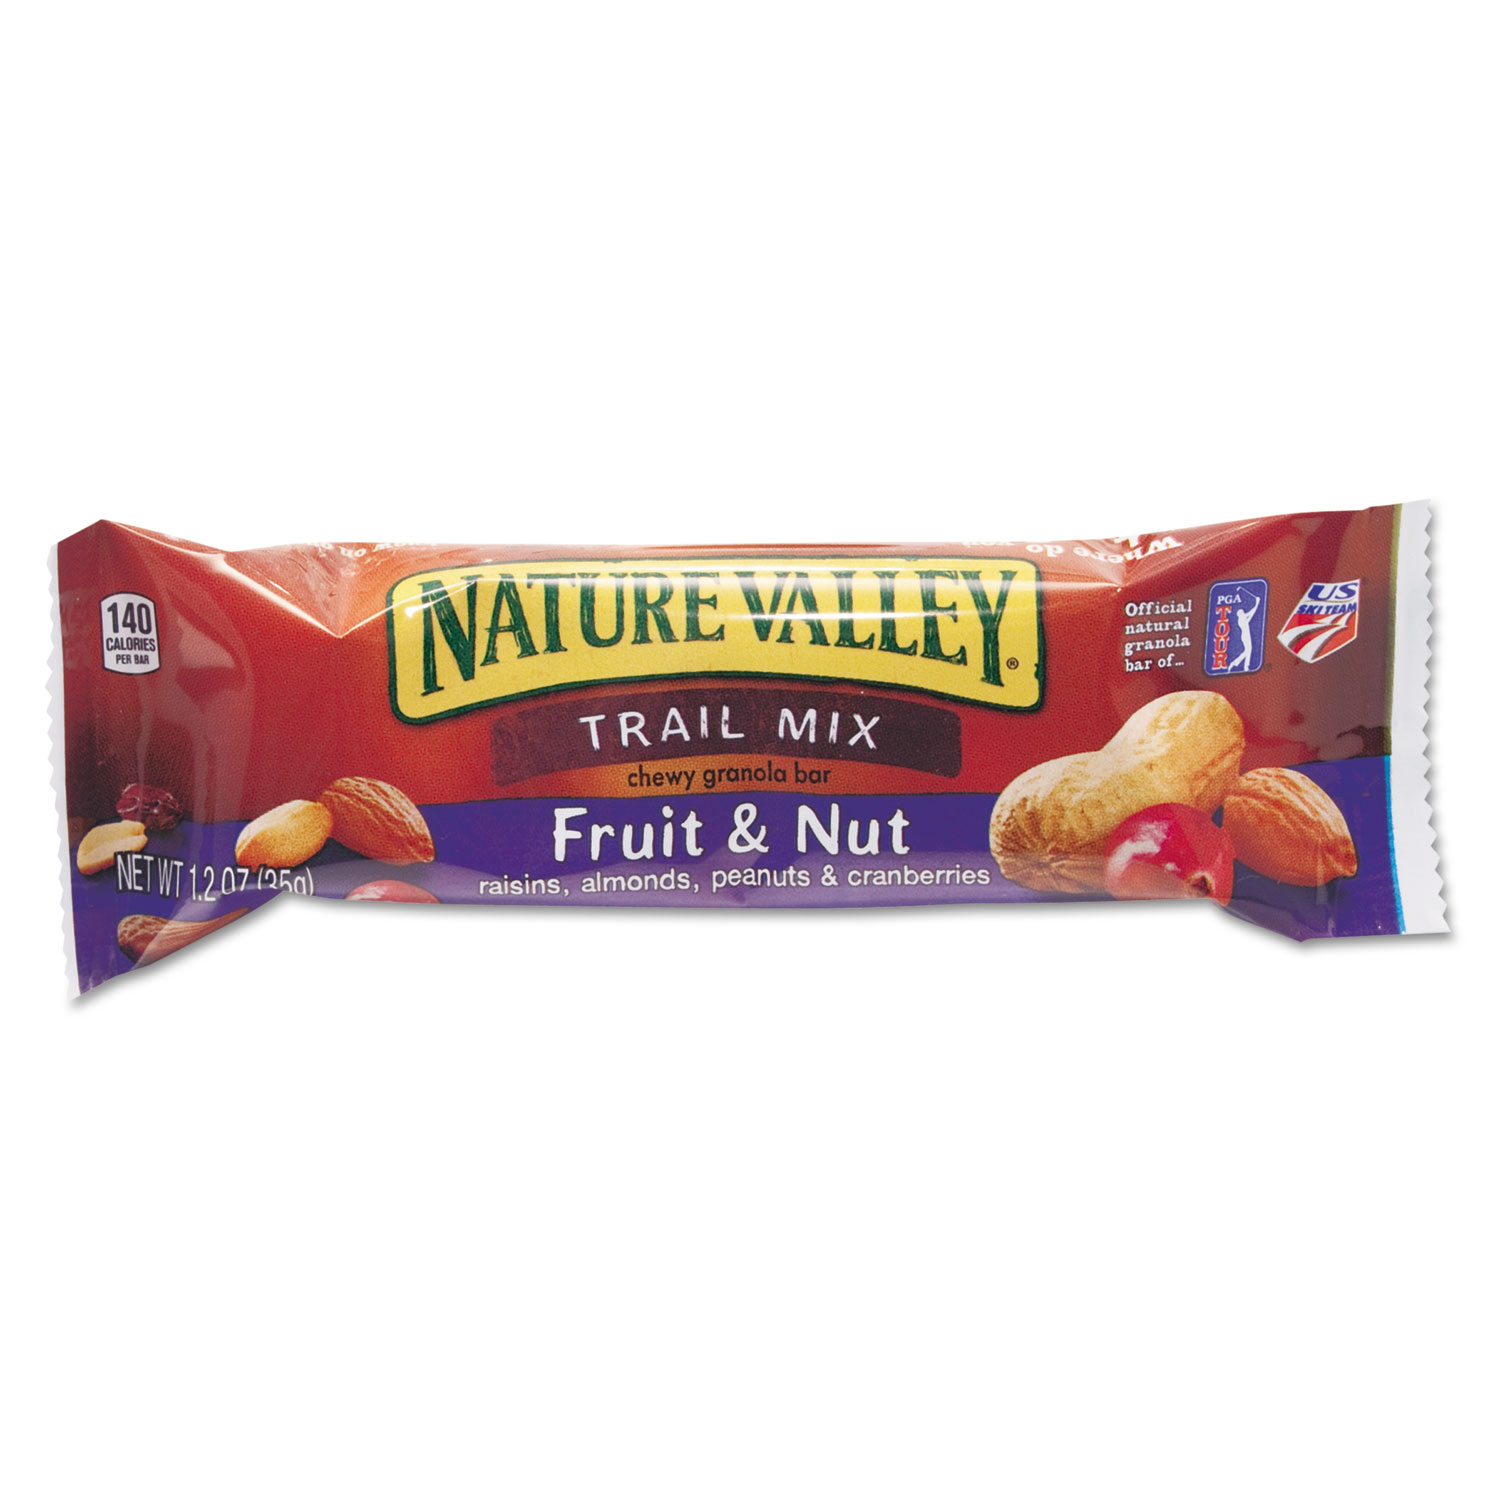 Granola Bars, Chewy Trail Mix Cereal, 1.2 oz Bar, 16/Box